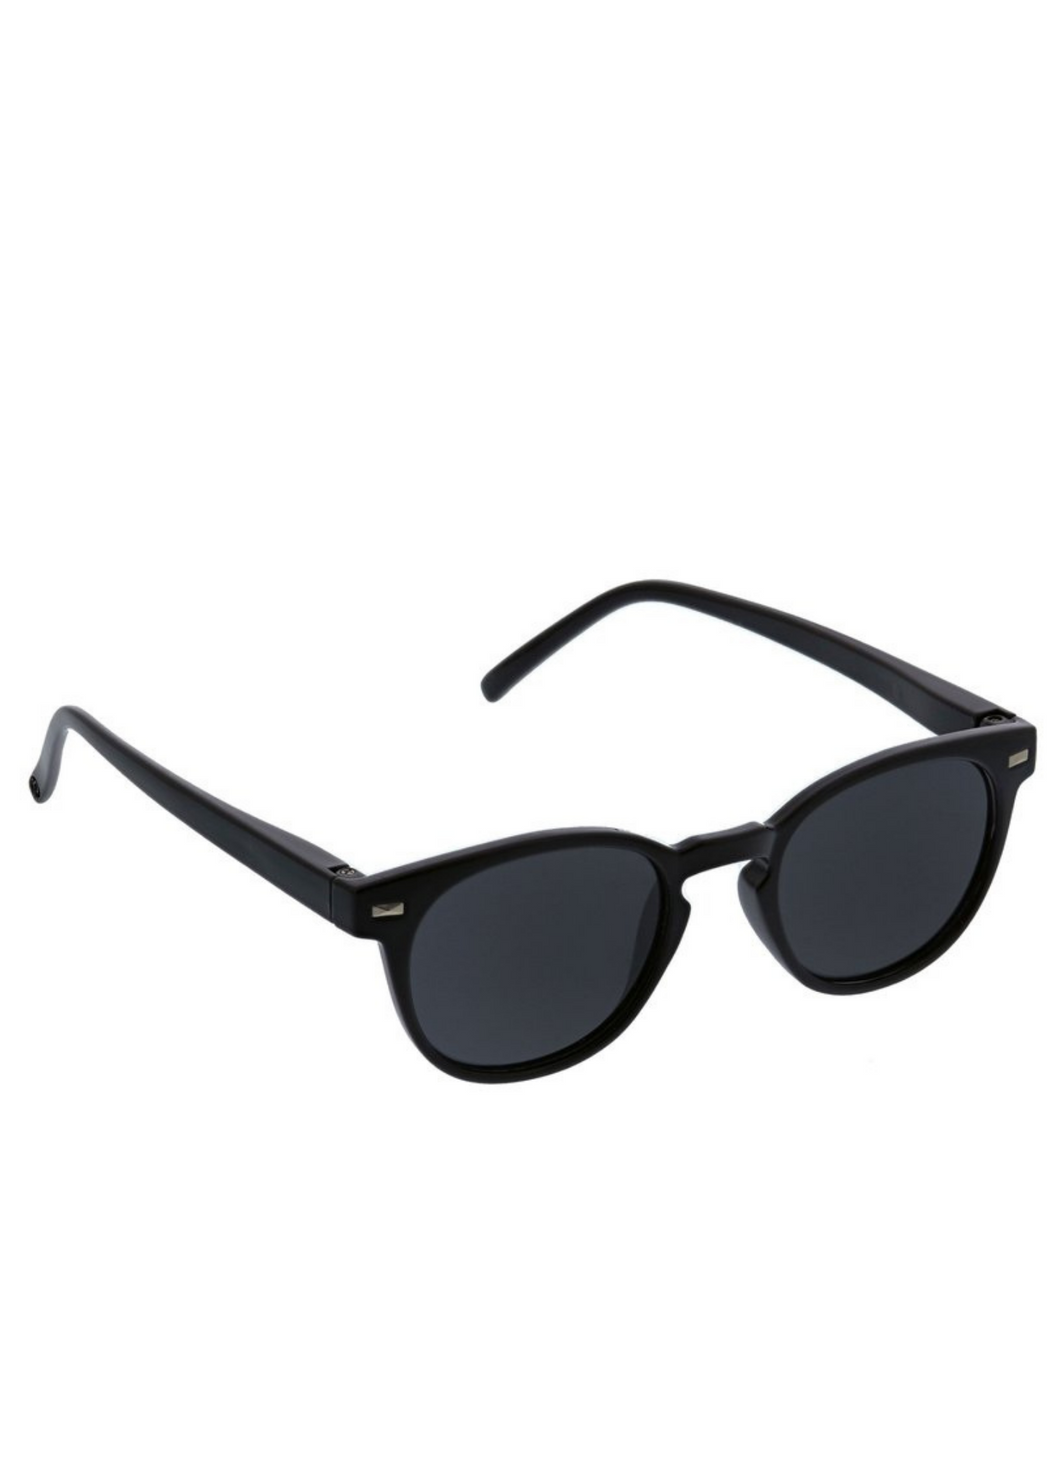 Wilfred Sunglasses - Black